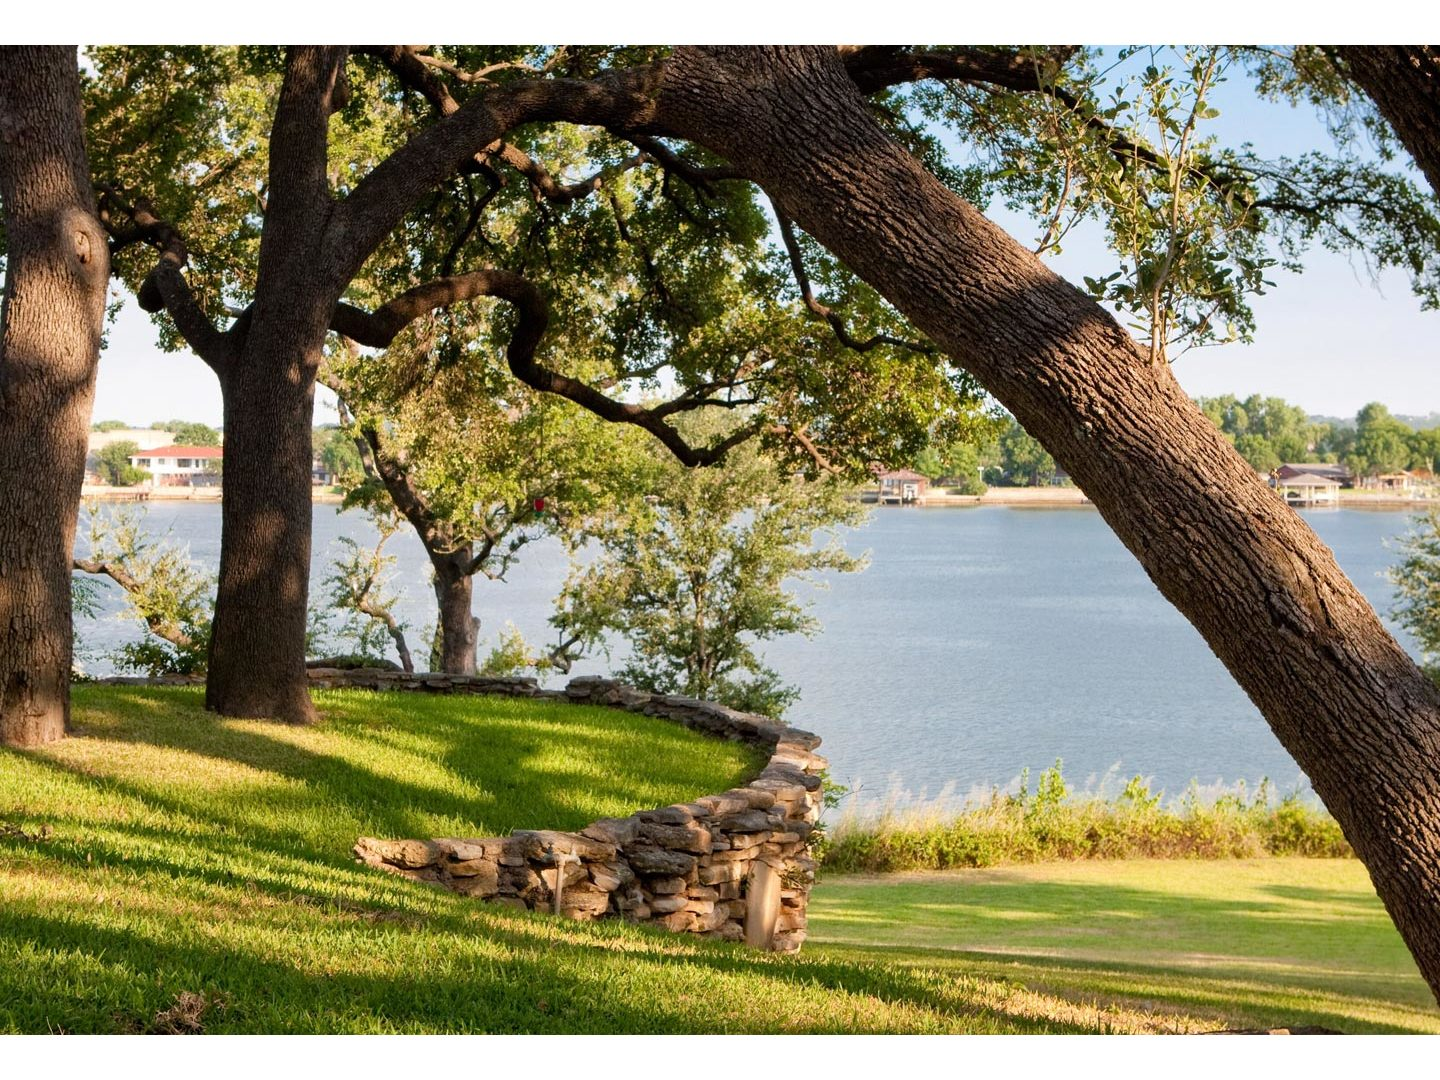 A tree next to a body of water at Inn on Lake Granbury.